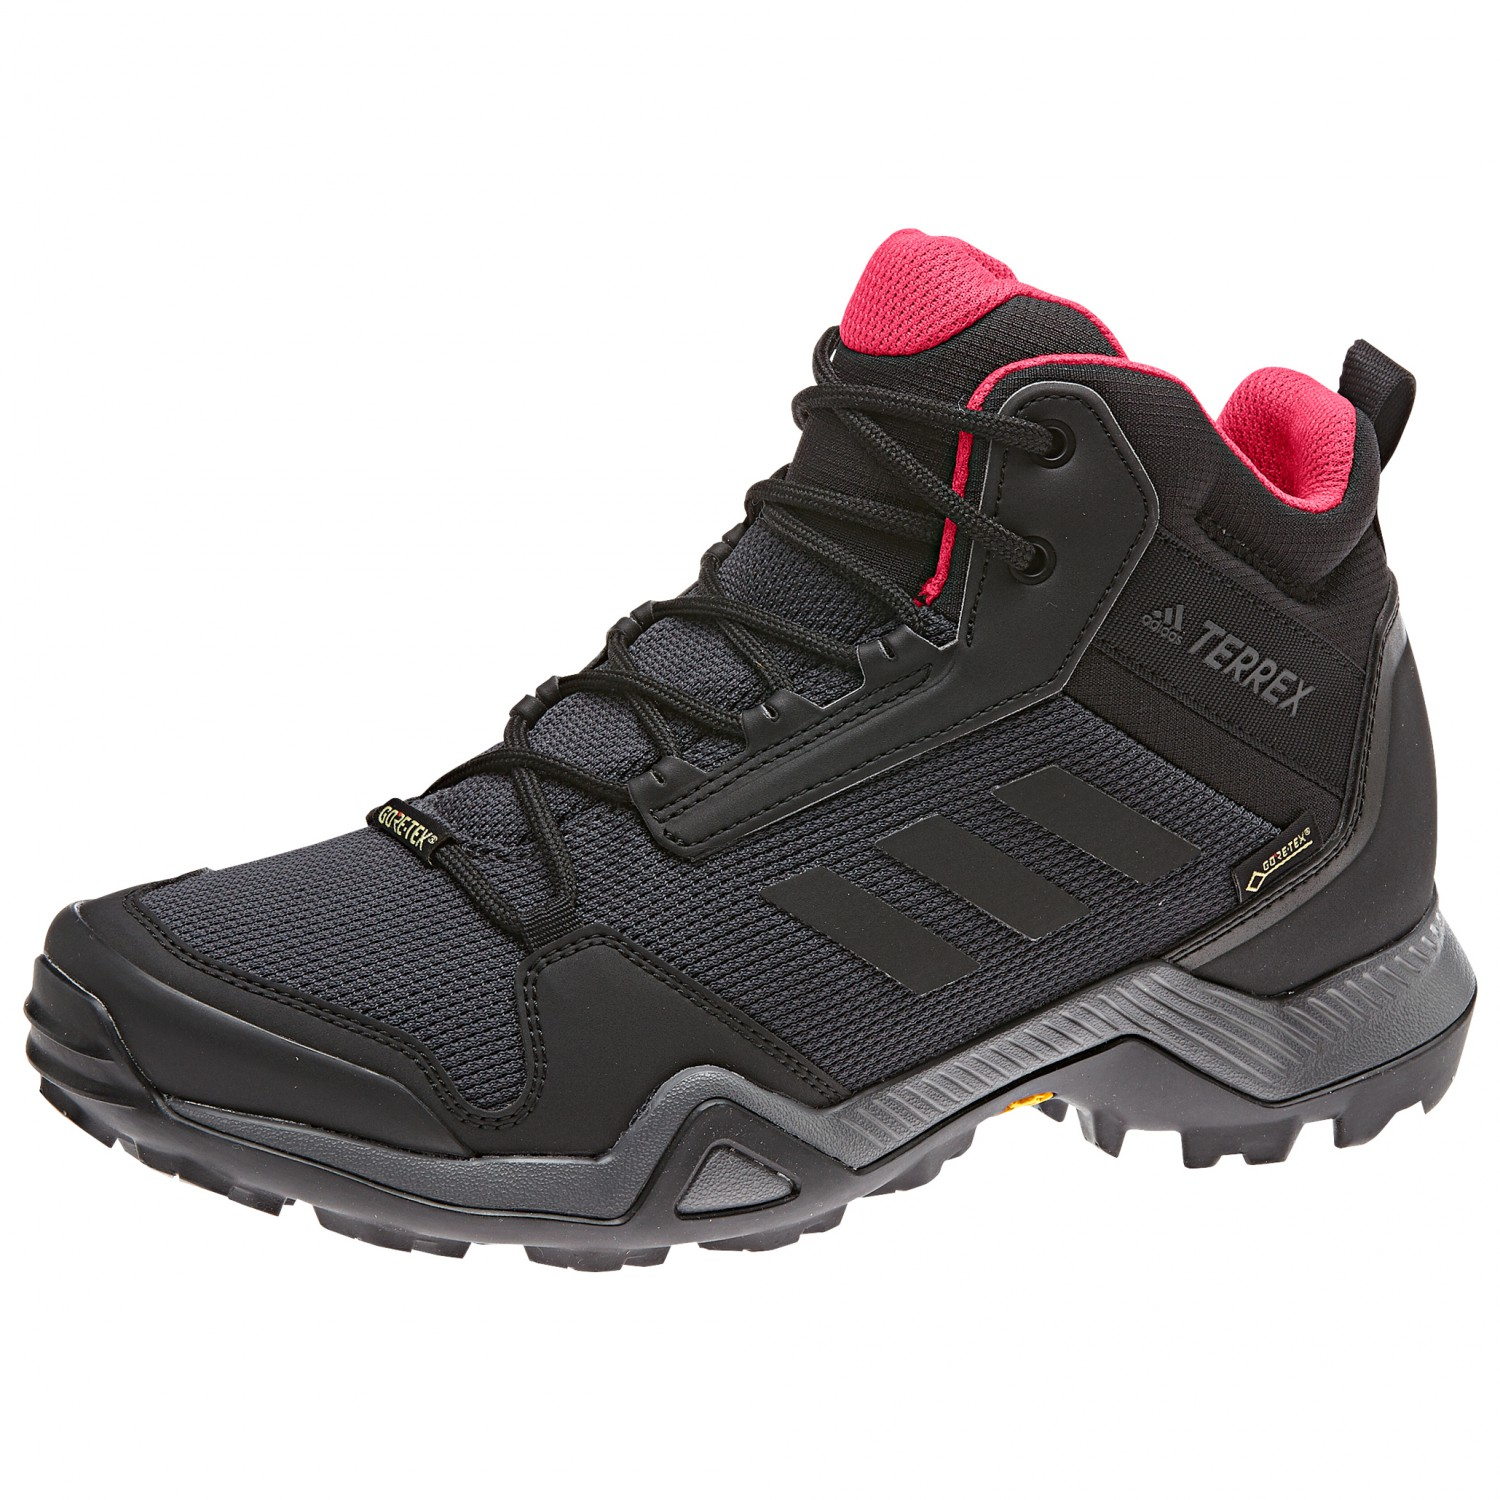 adidas - Women's Terrex AX3 Mid GTX - Walking boots - Grey Five / Core  Black / Clemin | 3,5 (UK)